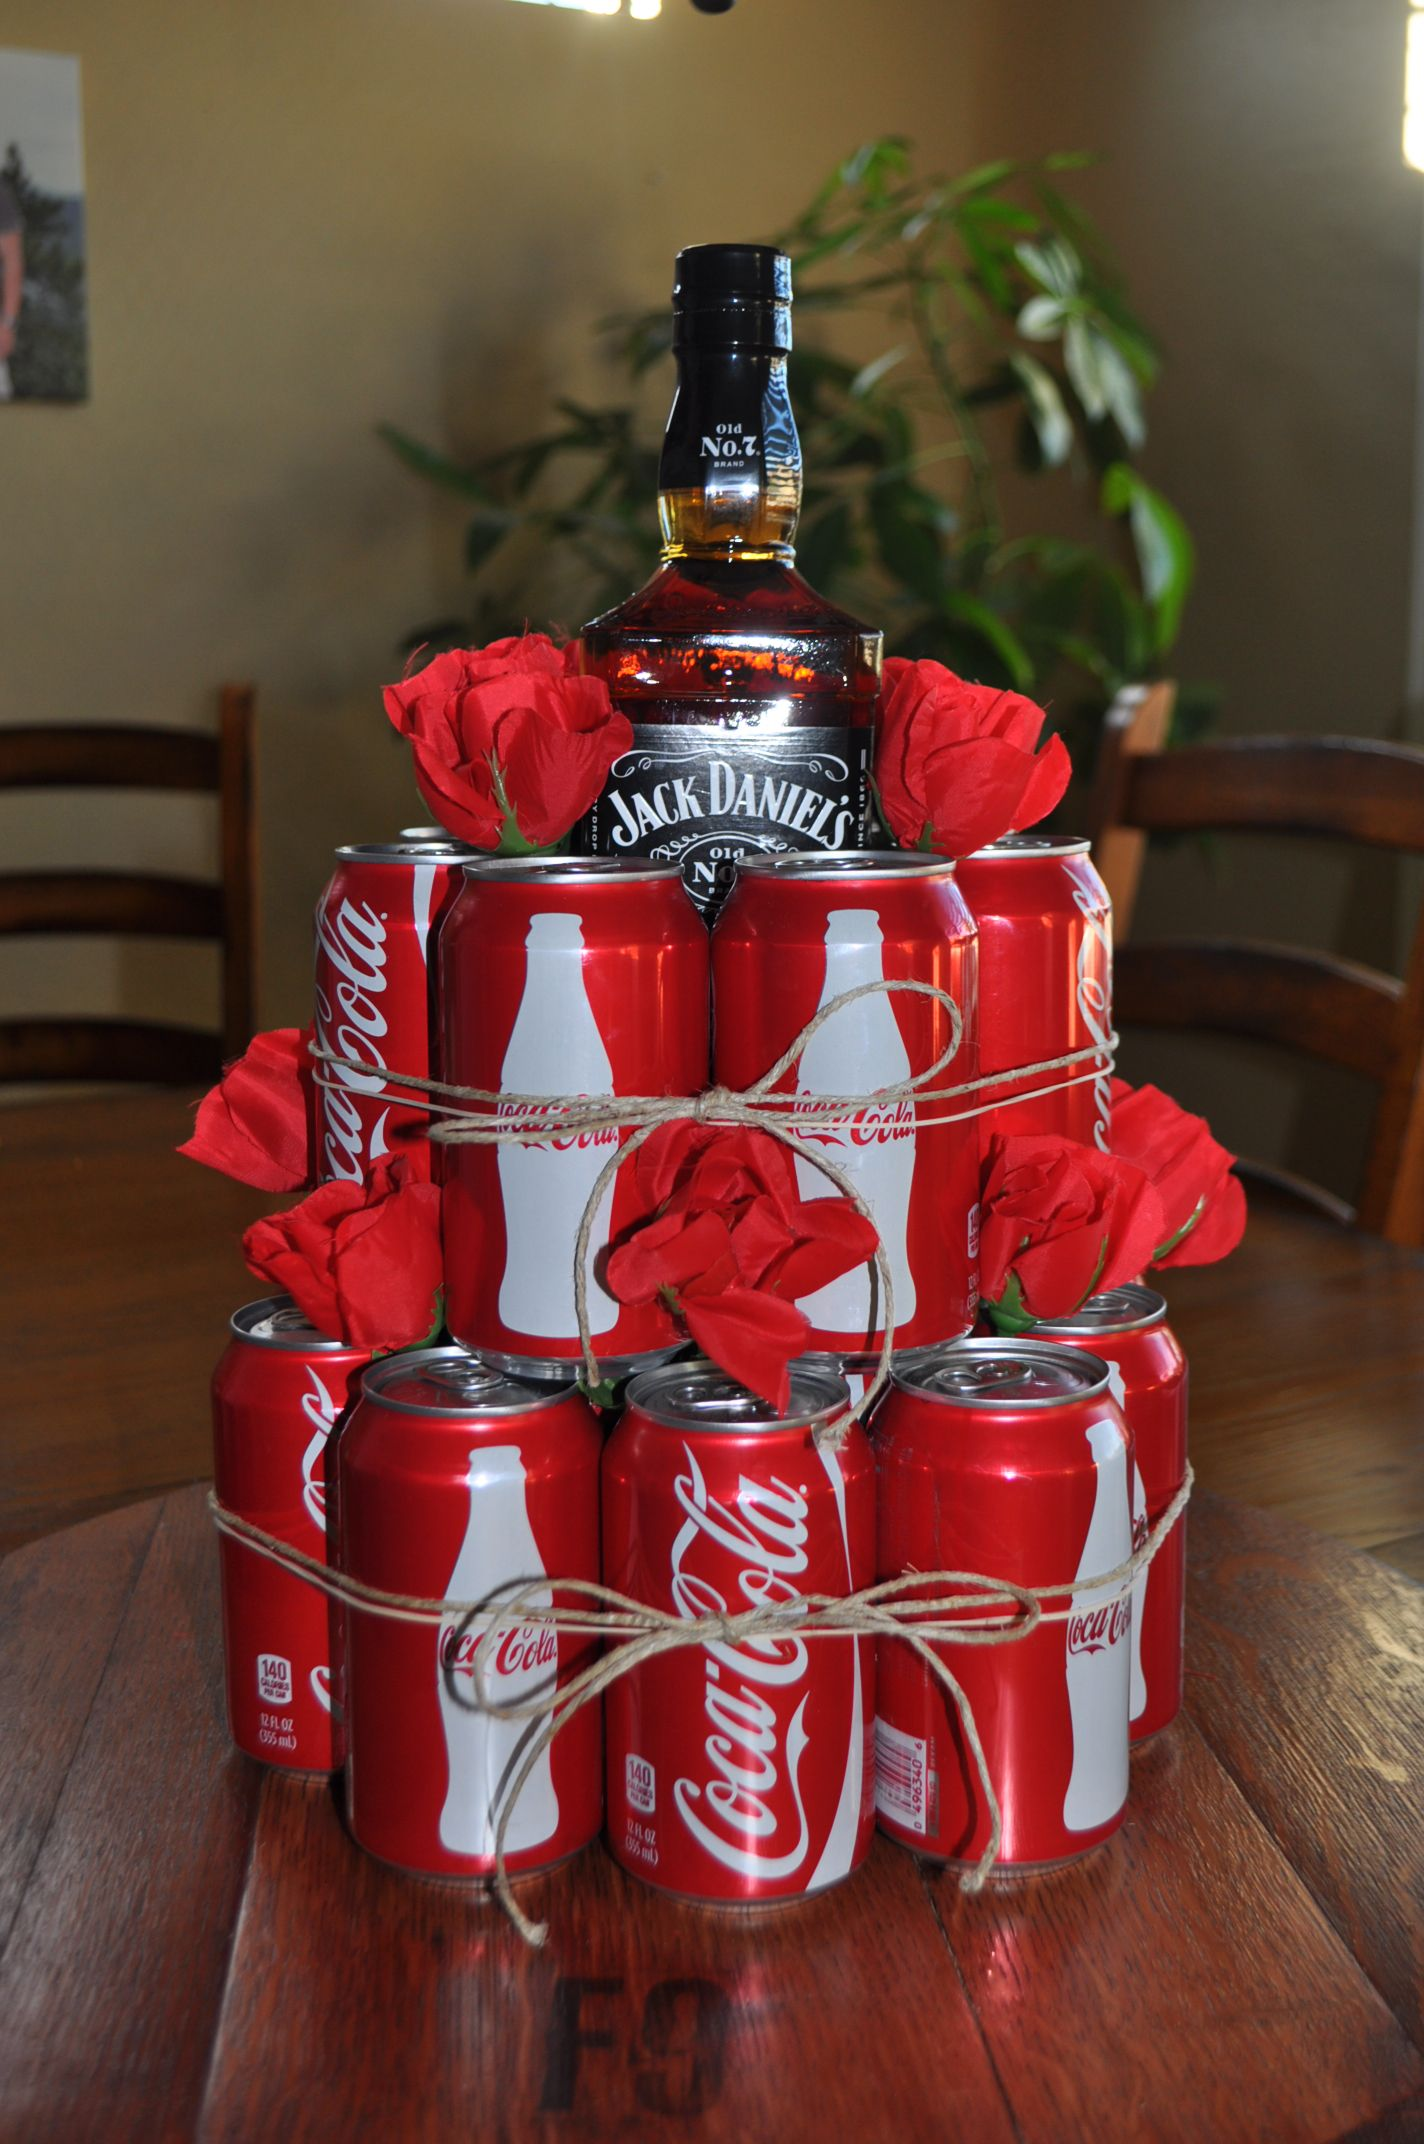 21 Present Ideas For Your Bff S 21st Birthday Jack